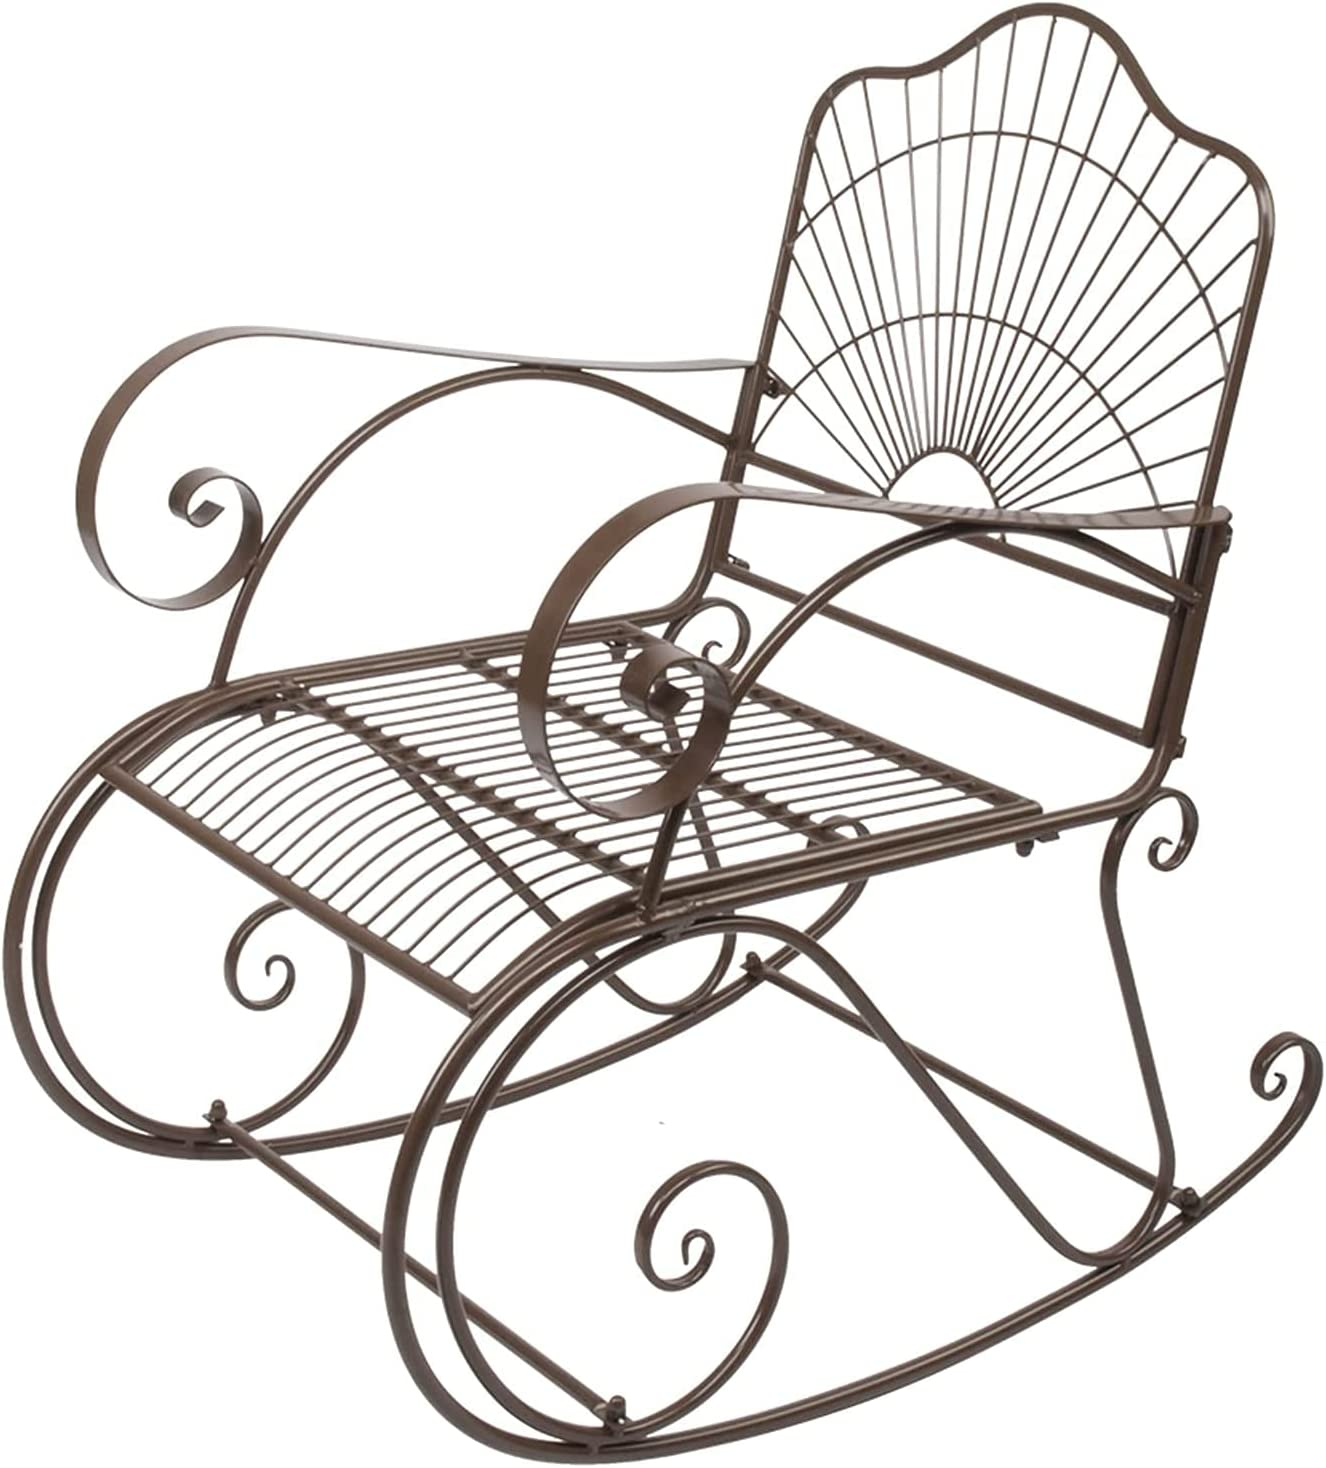 Cash special price HDHUIXS Max 77% OFF Compactly Iron Wire Single Chair Unim Dark Rocking Brown